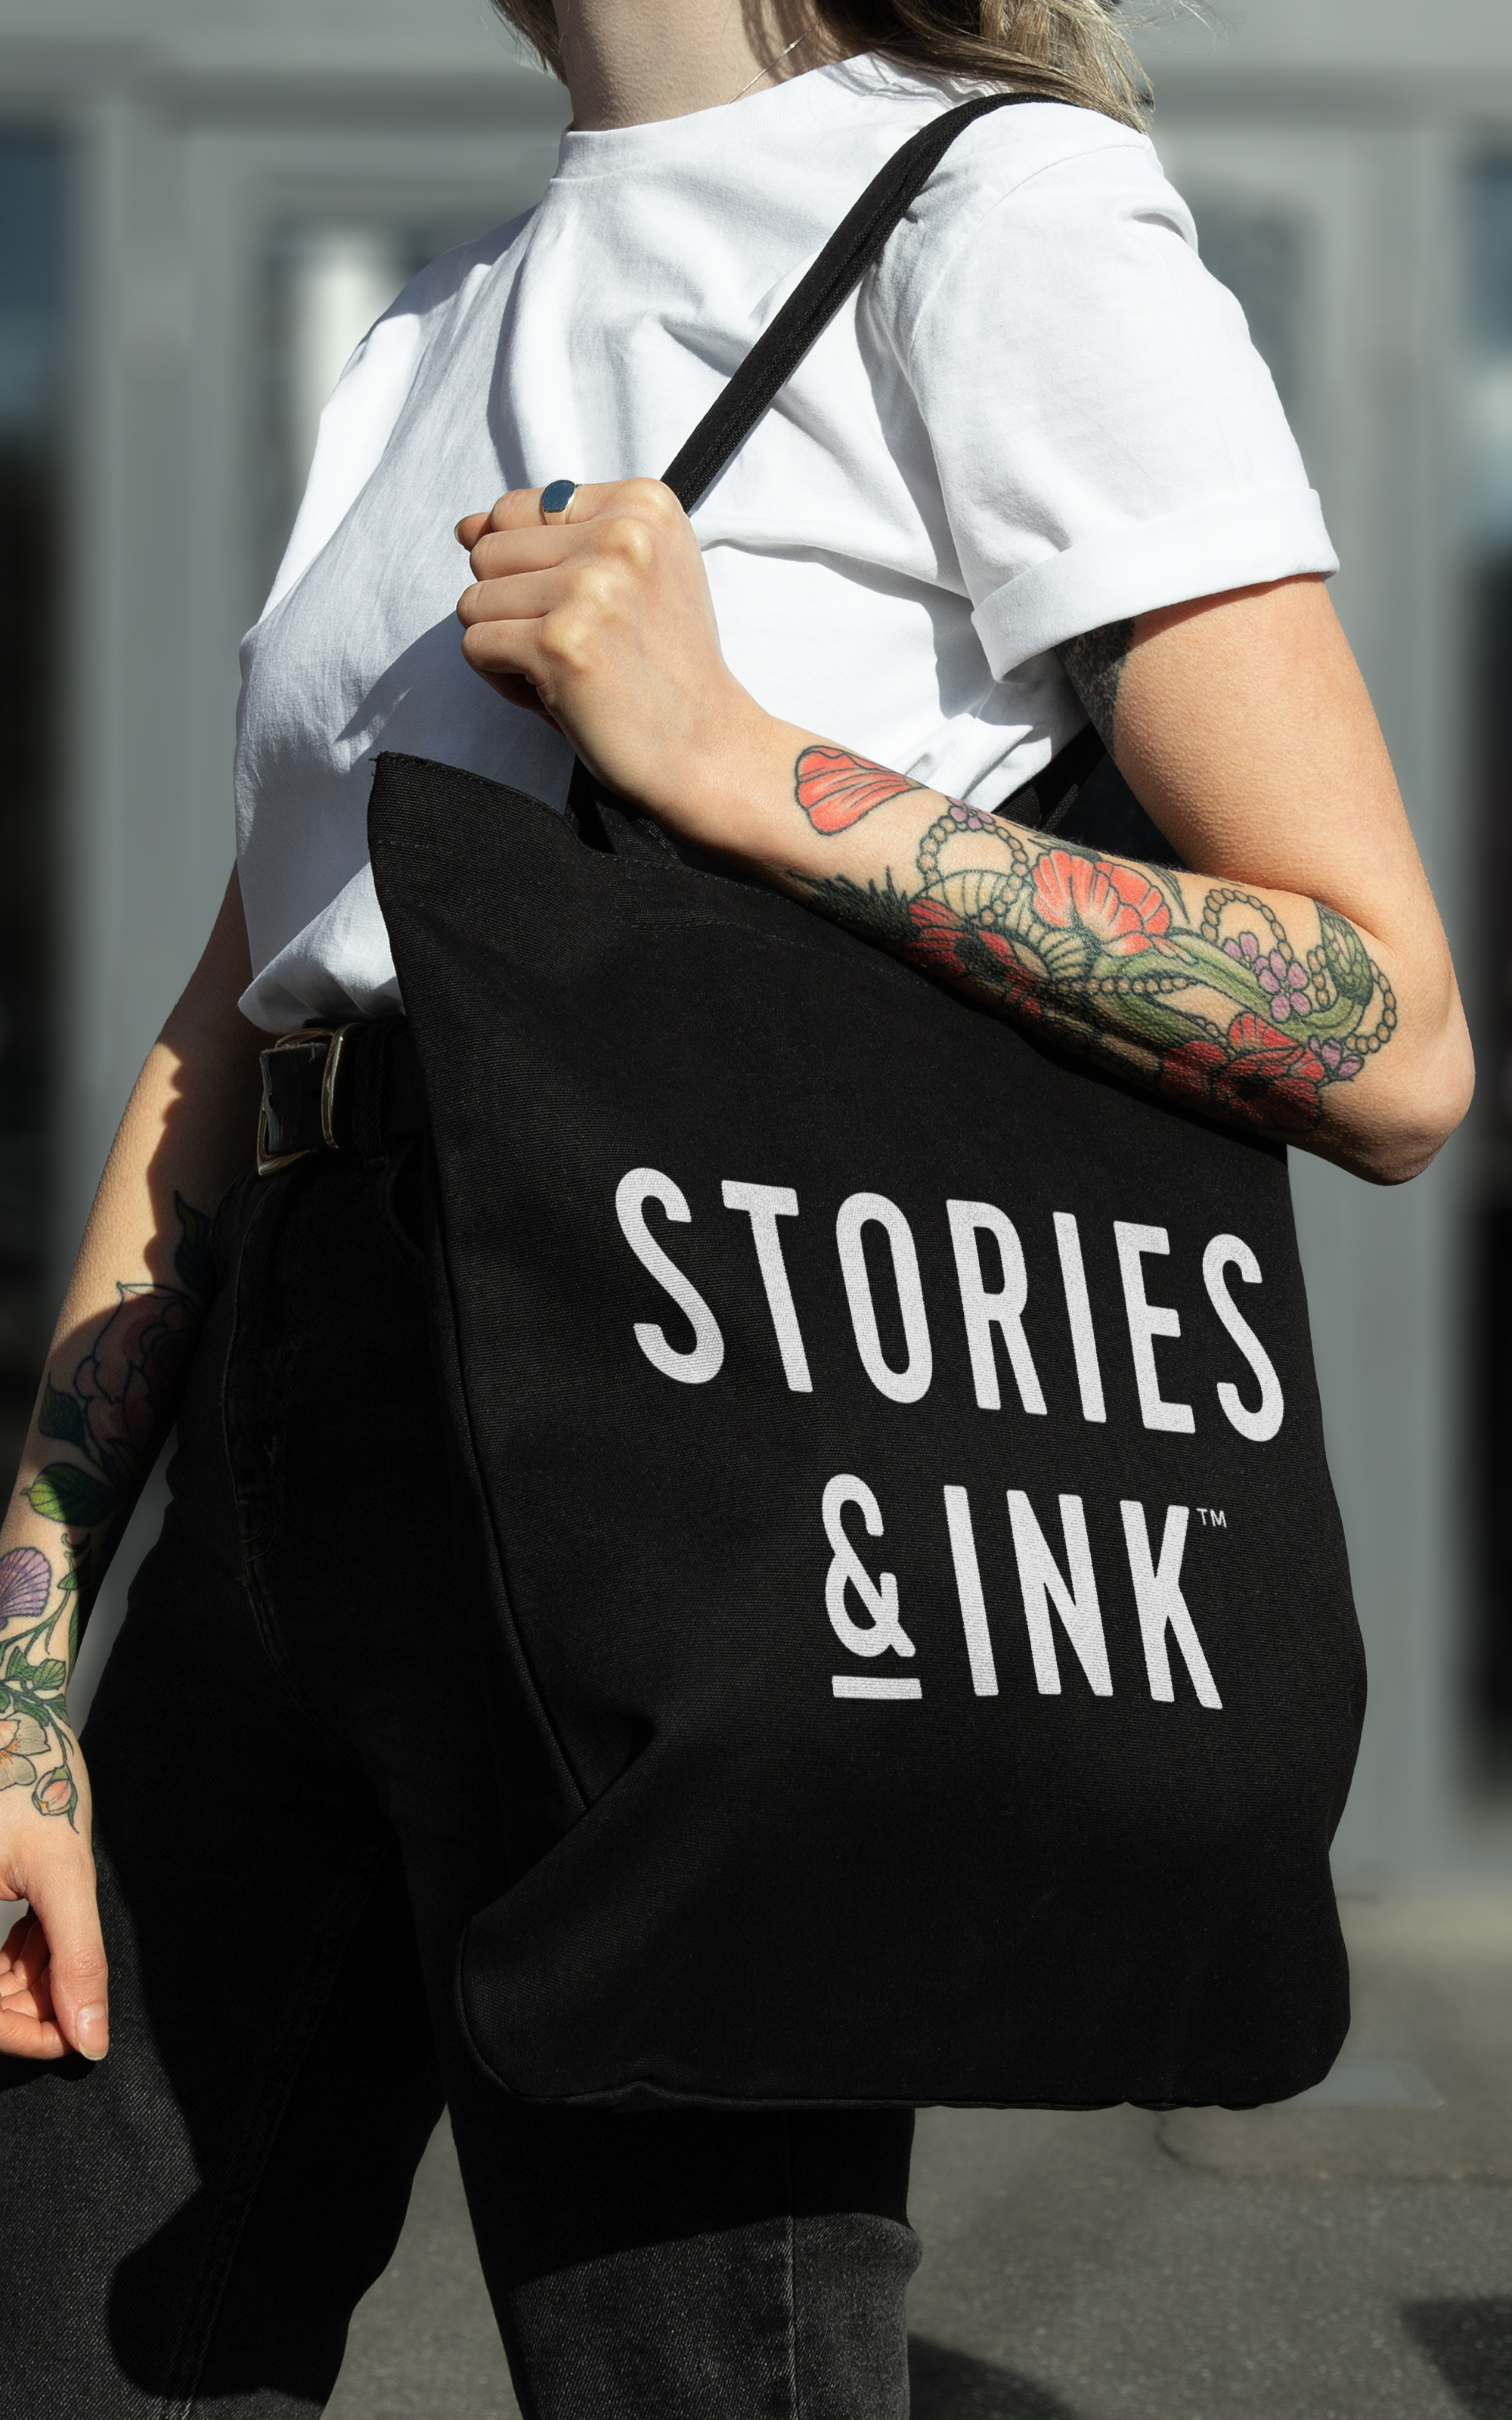 New Name, Logo, and Packaging for Stories & Ink by Robot Food